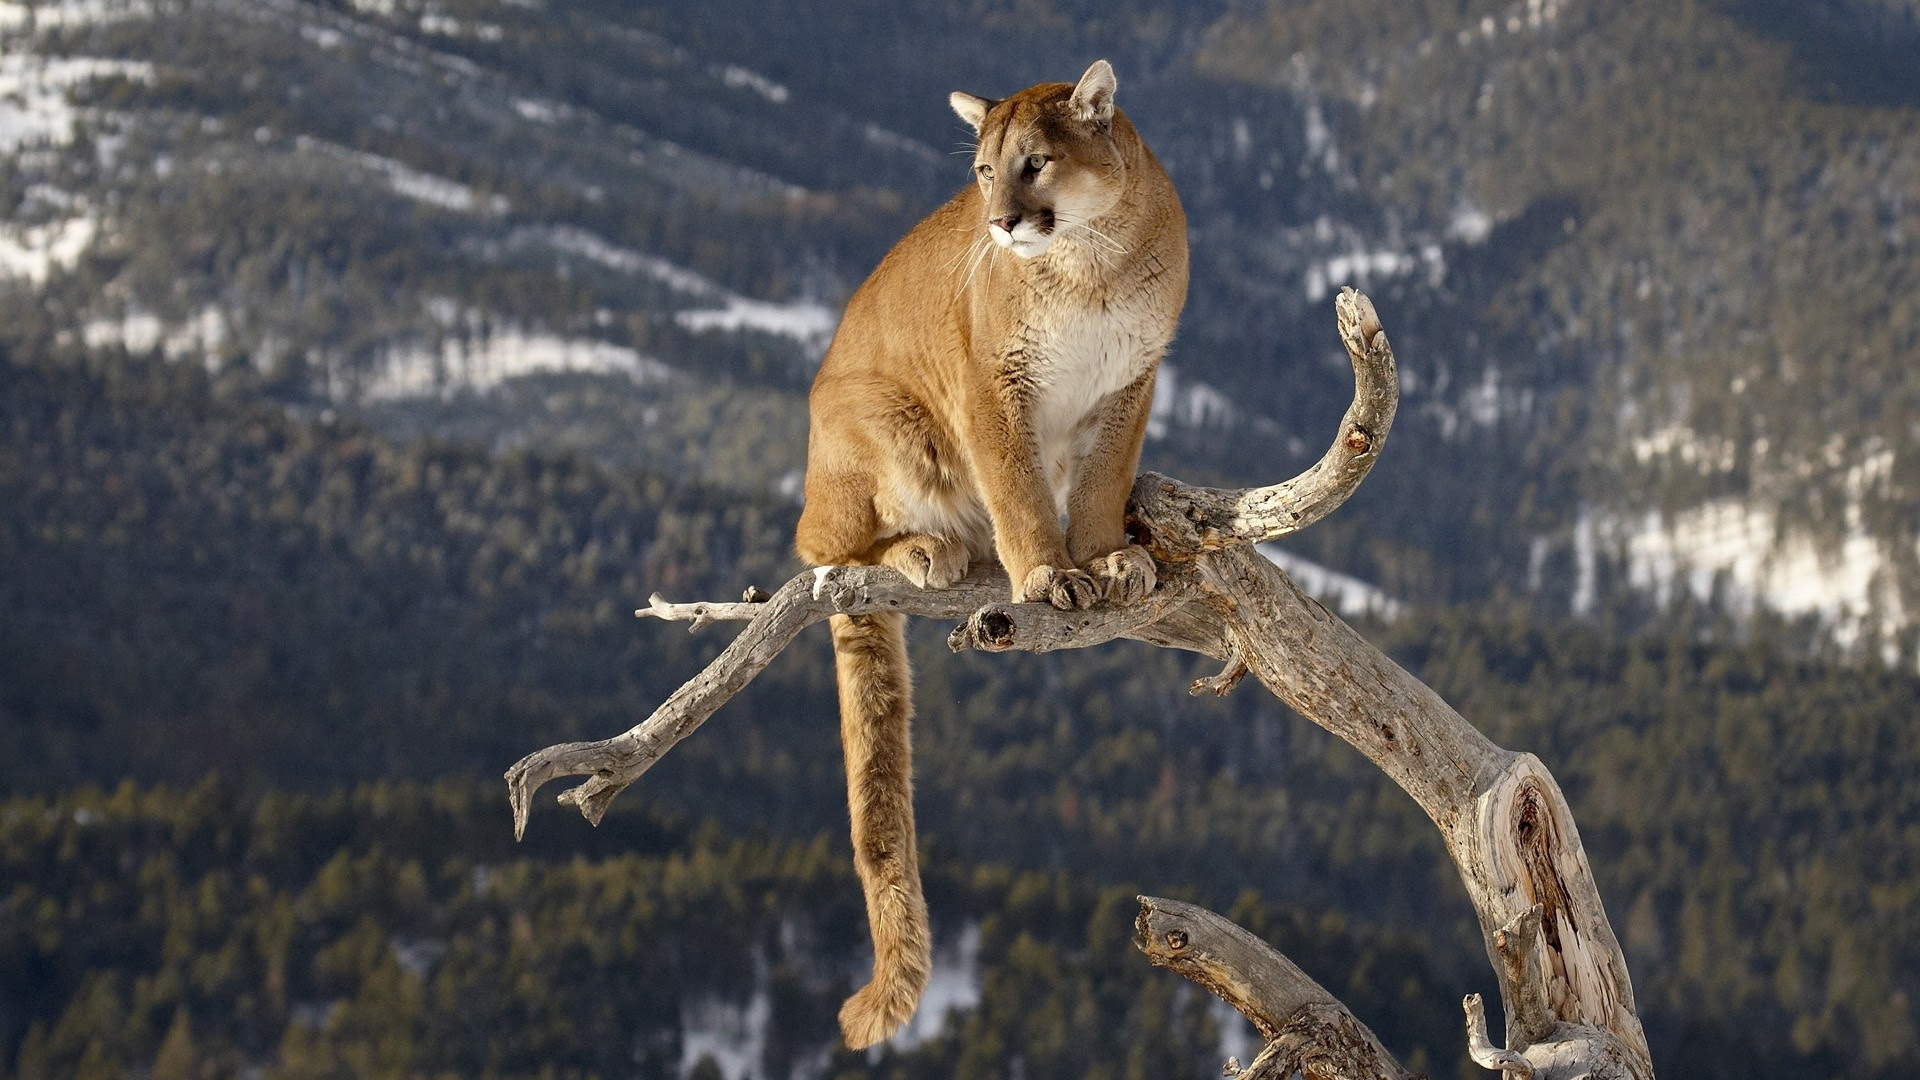 Big Cats Images Cougar Hd Wallpaper And Background Photos 40613360